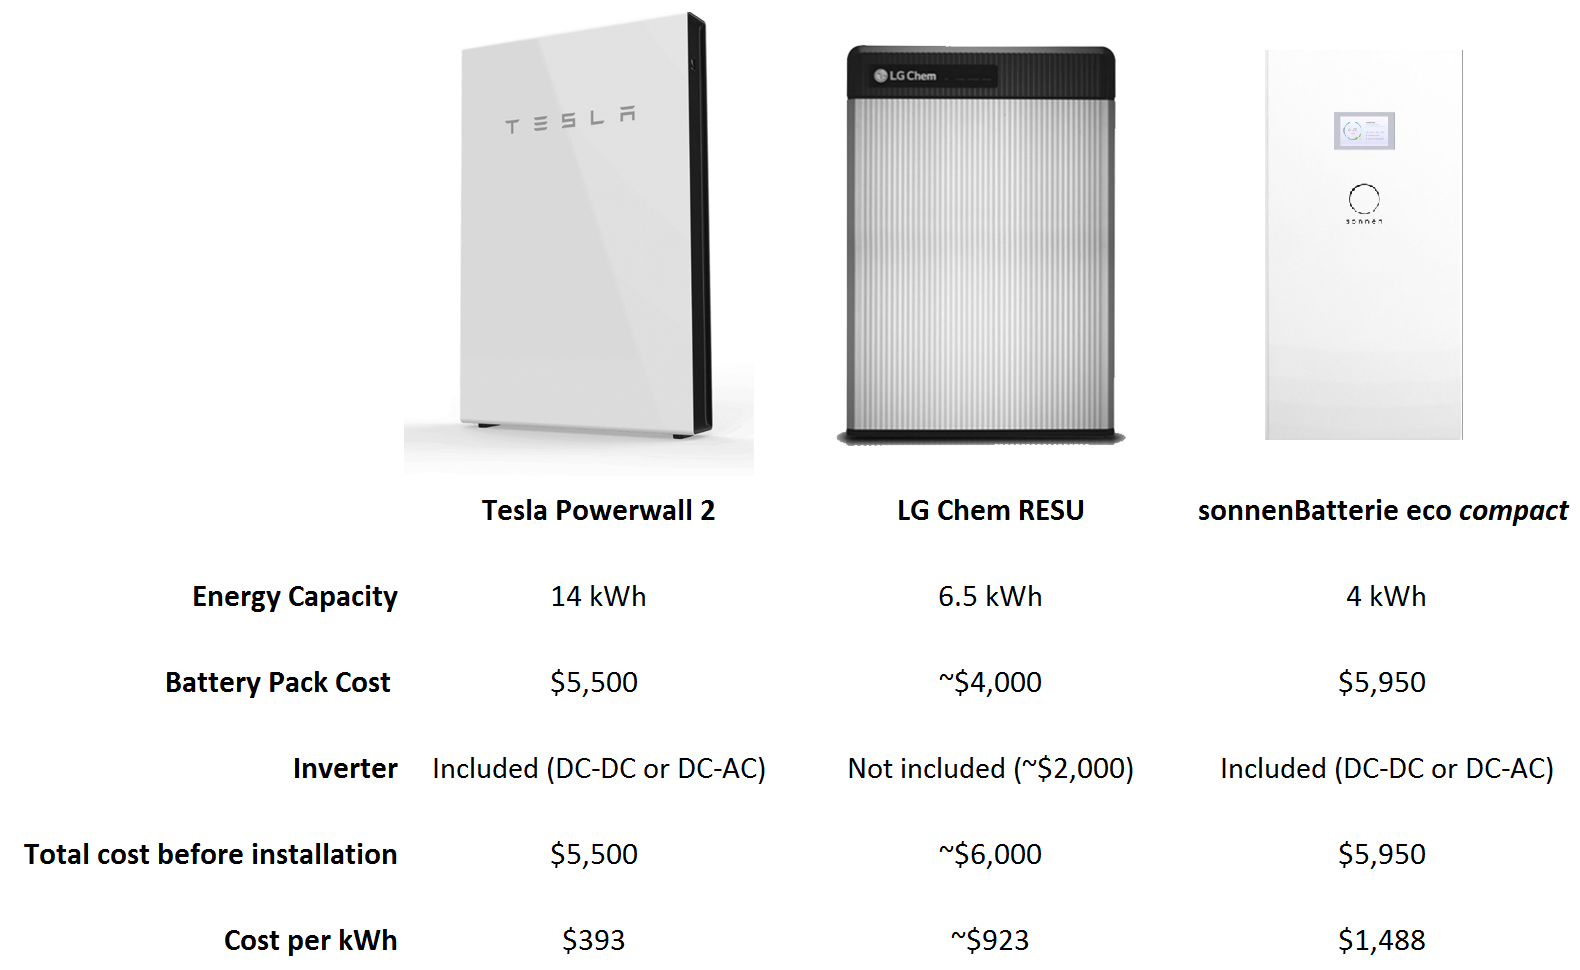 Tesla Offers A 10 Year Warranty With Unlimited Cycles It Looks Like They Are Pretty Confident On The Powerwall S Durability Tesla Powerwall Powerwall Tesla